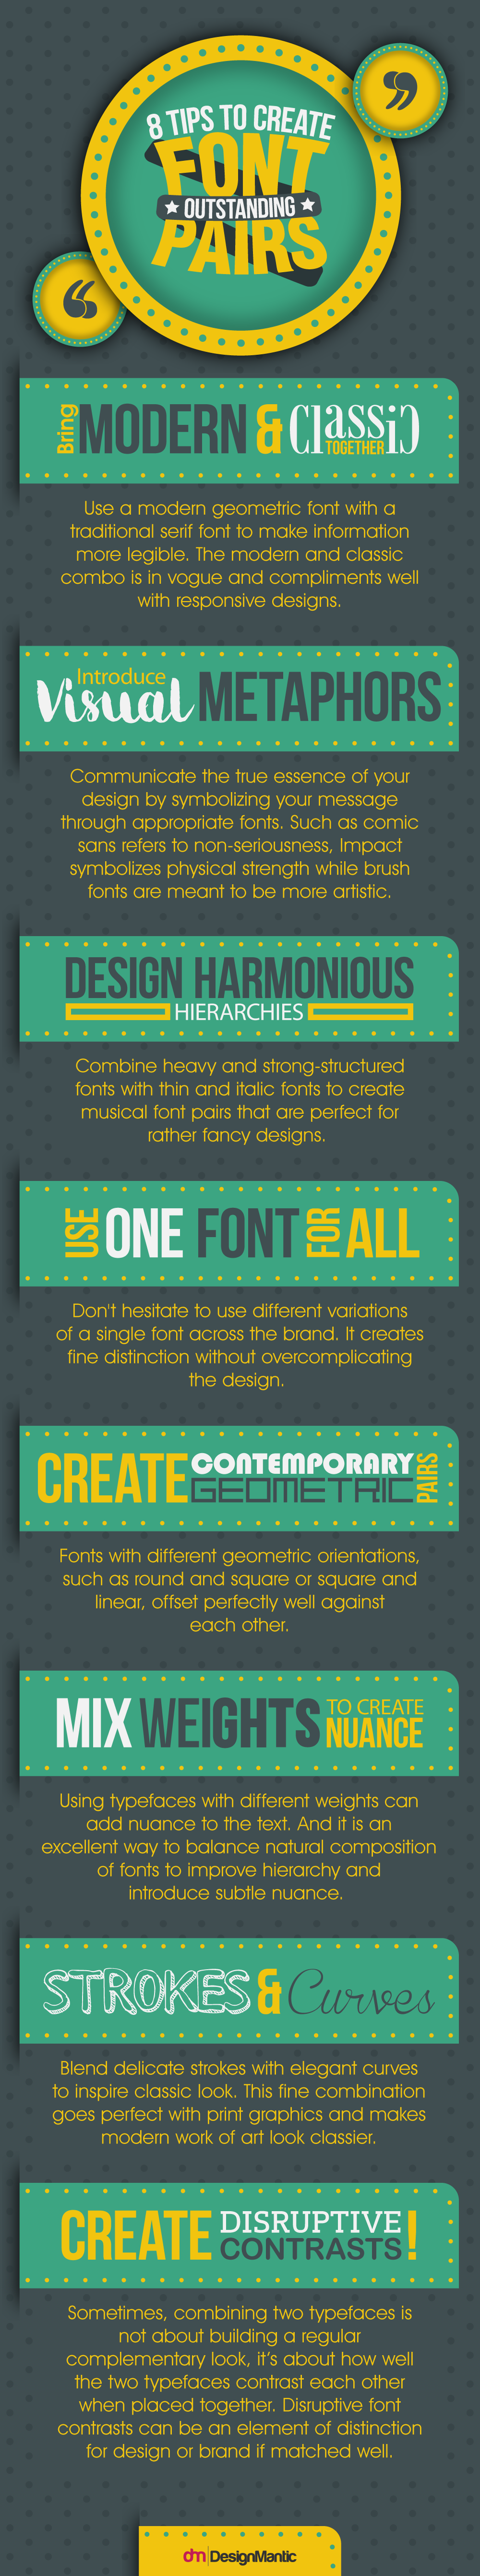 8 Tips to Create Outstanding Font Pairs